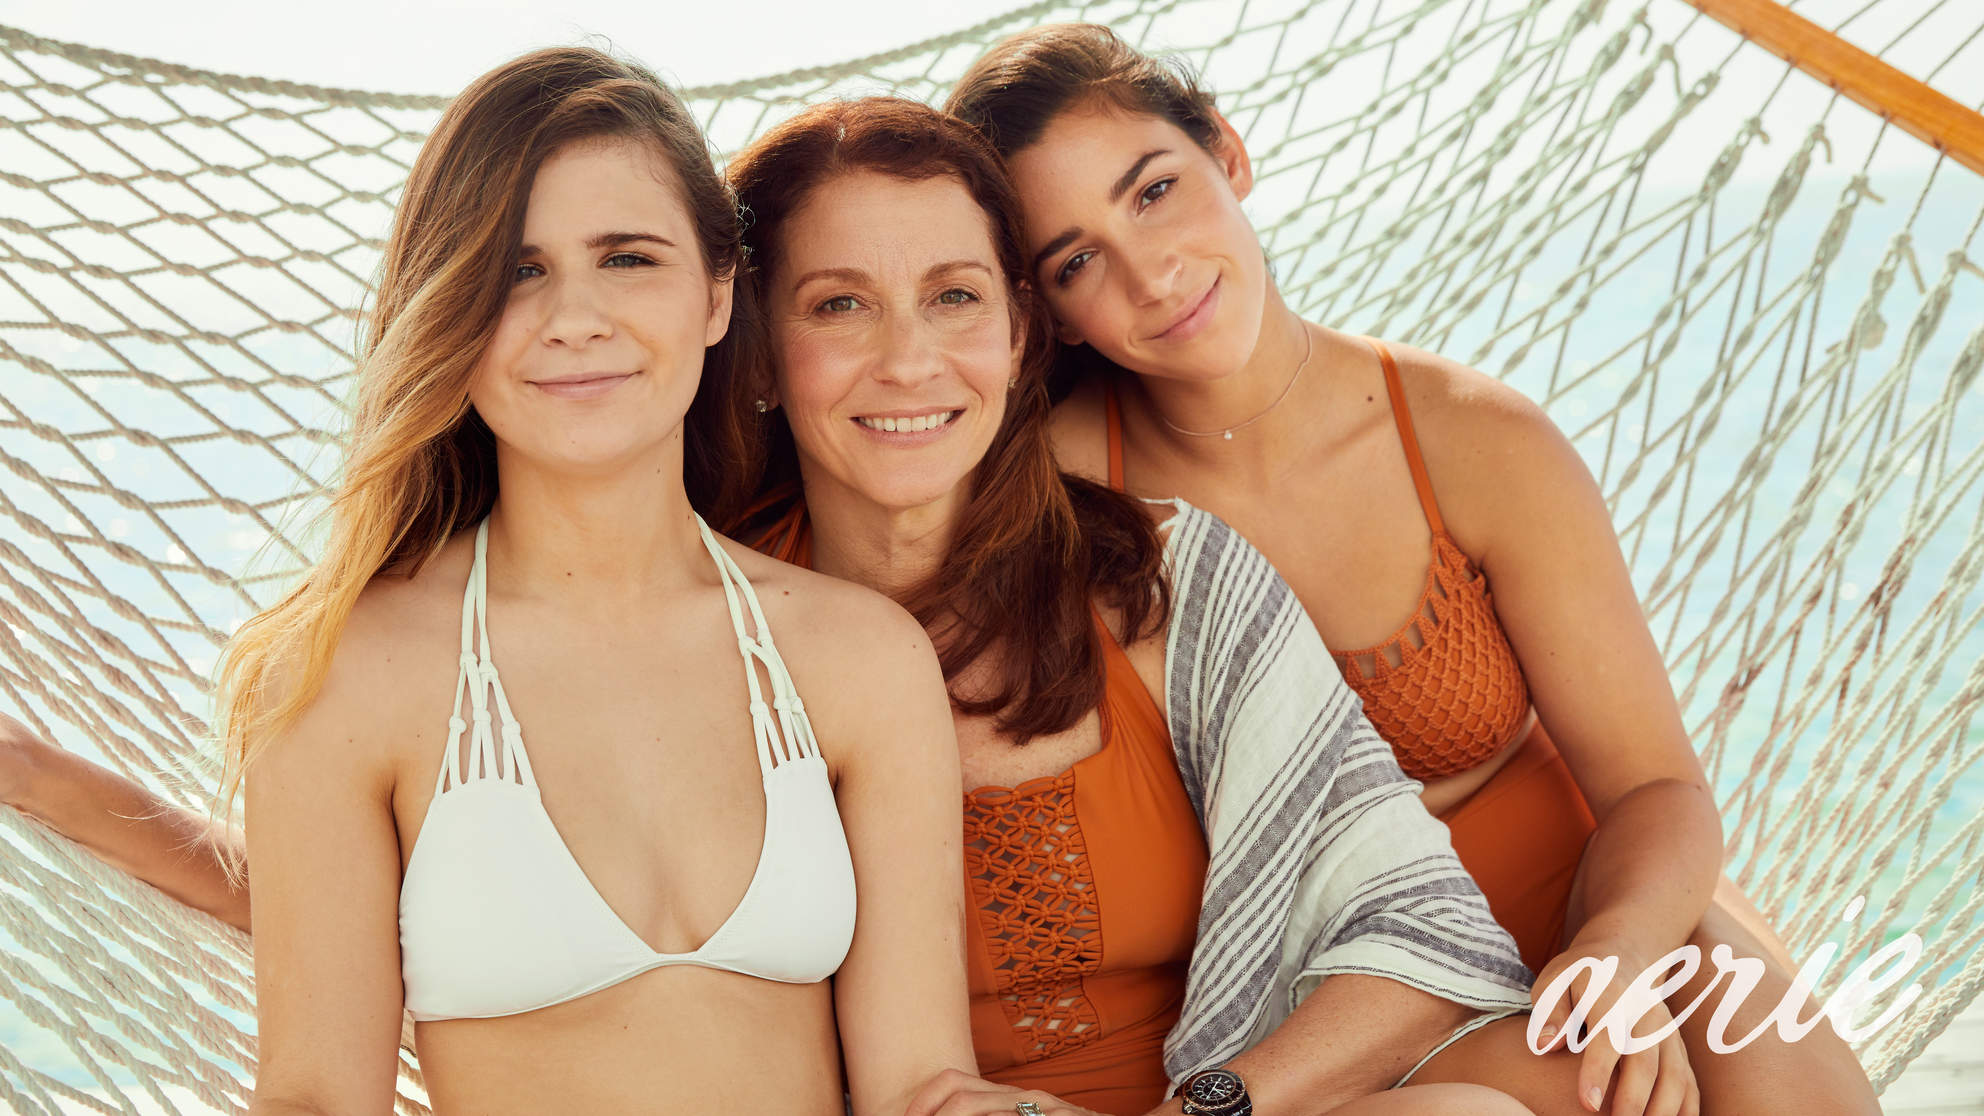 aerie-campaign-swimsuits-hammock